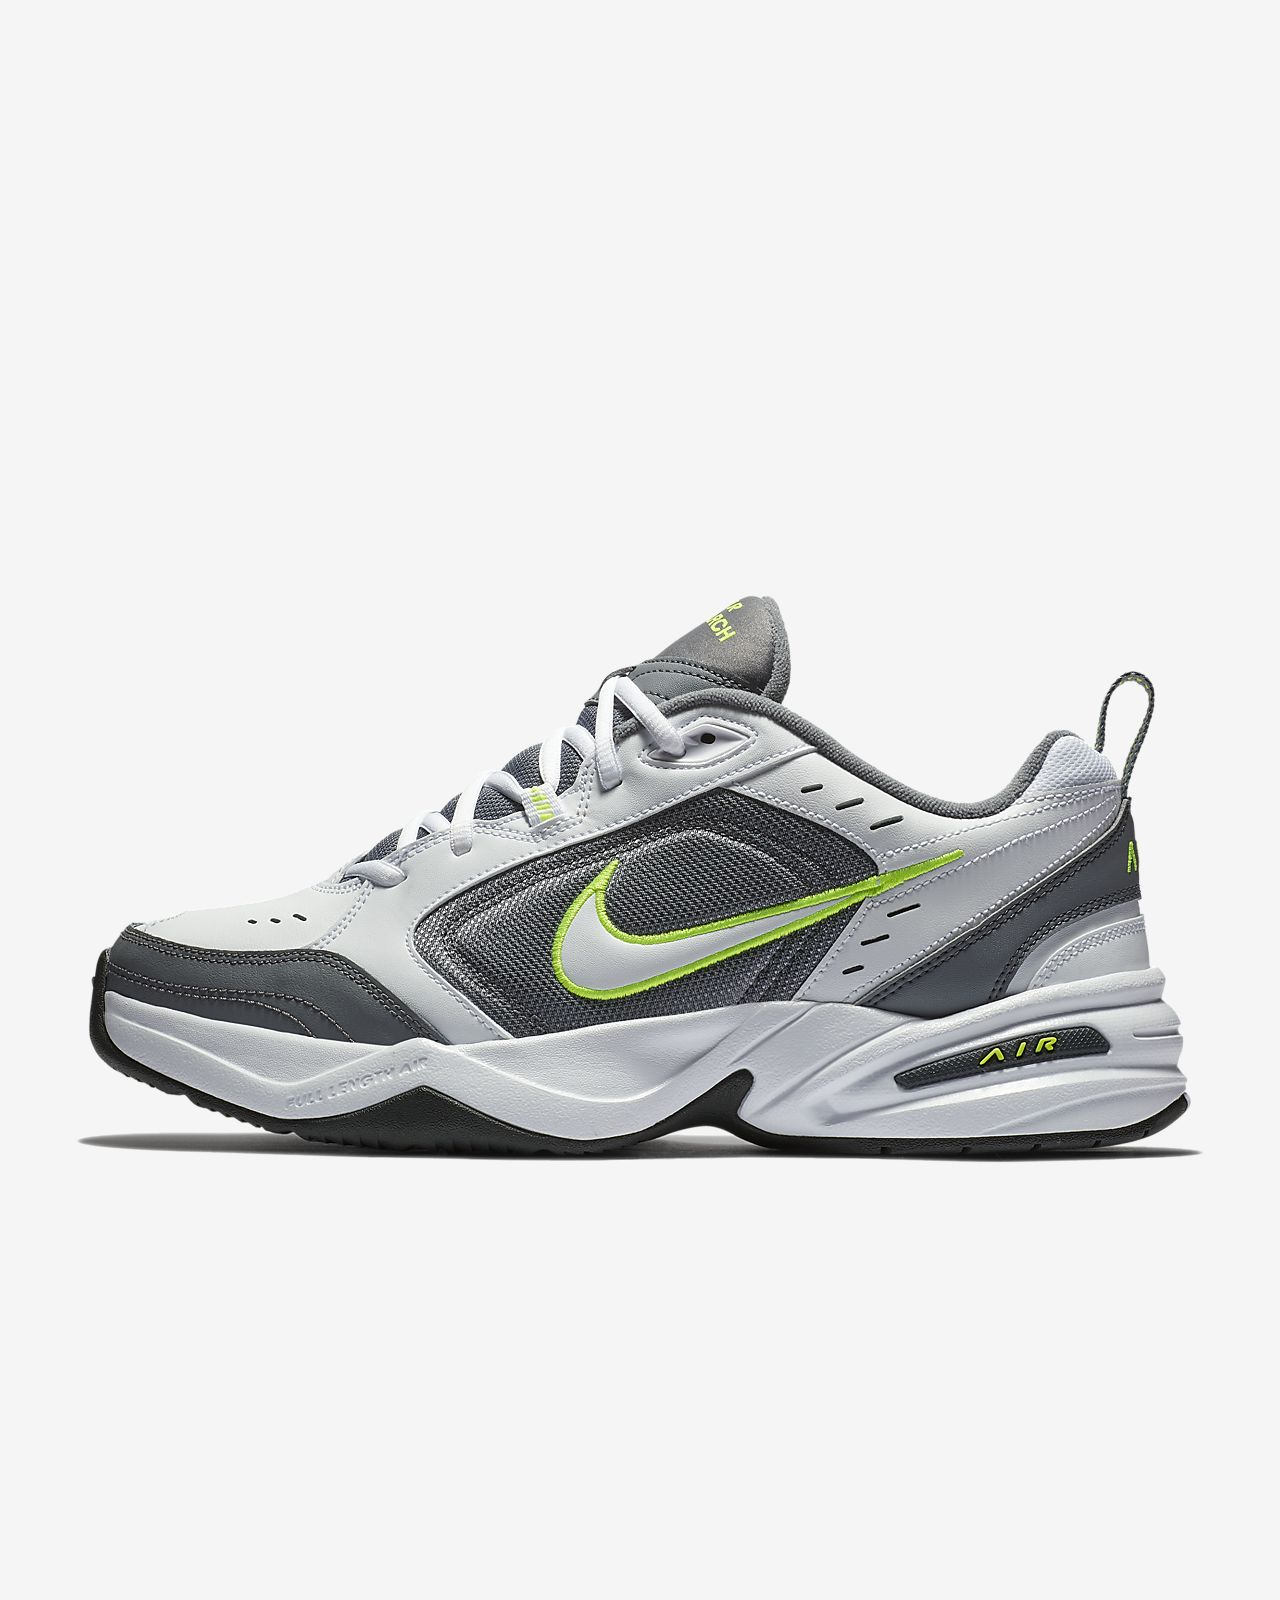 free shipping 984f0 5b3e2 ... Nike Air Monarch IV Lifestyle Gym Shoe